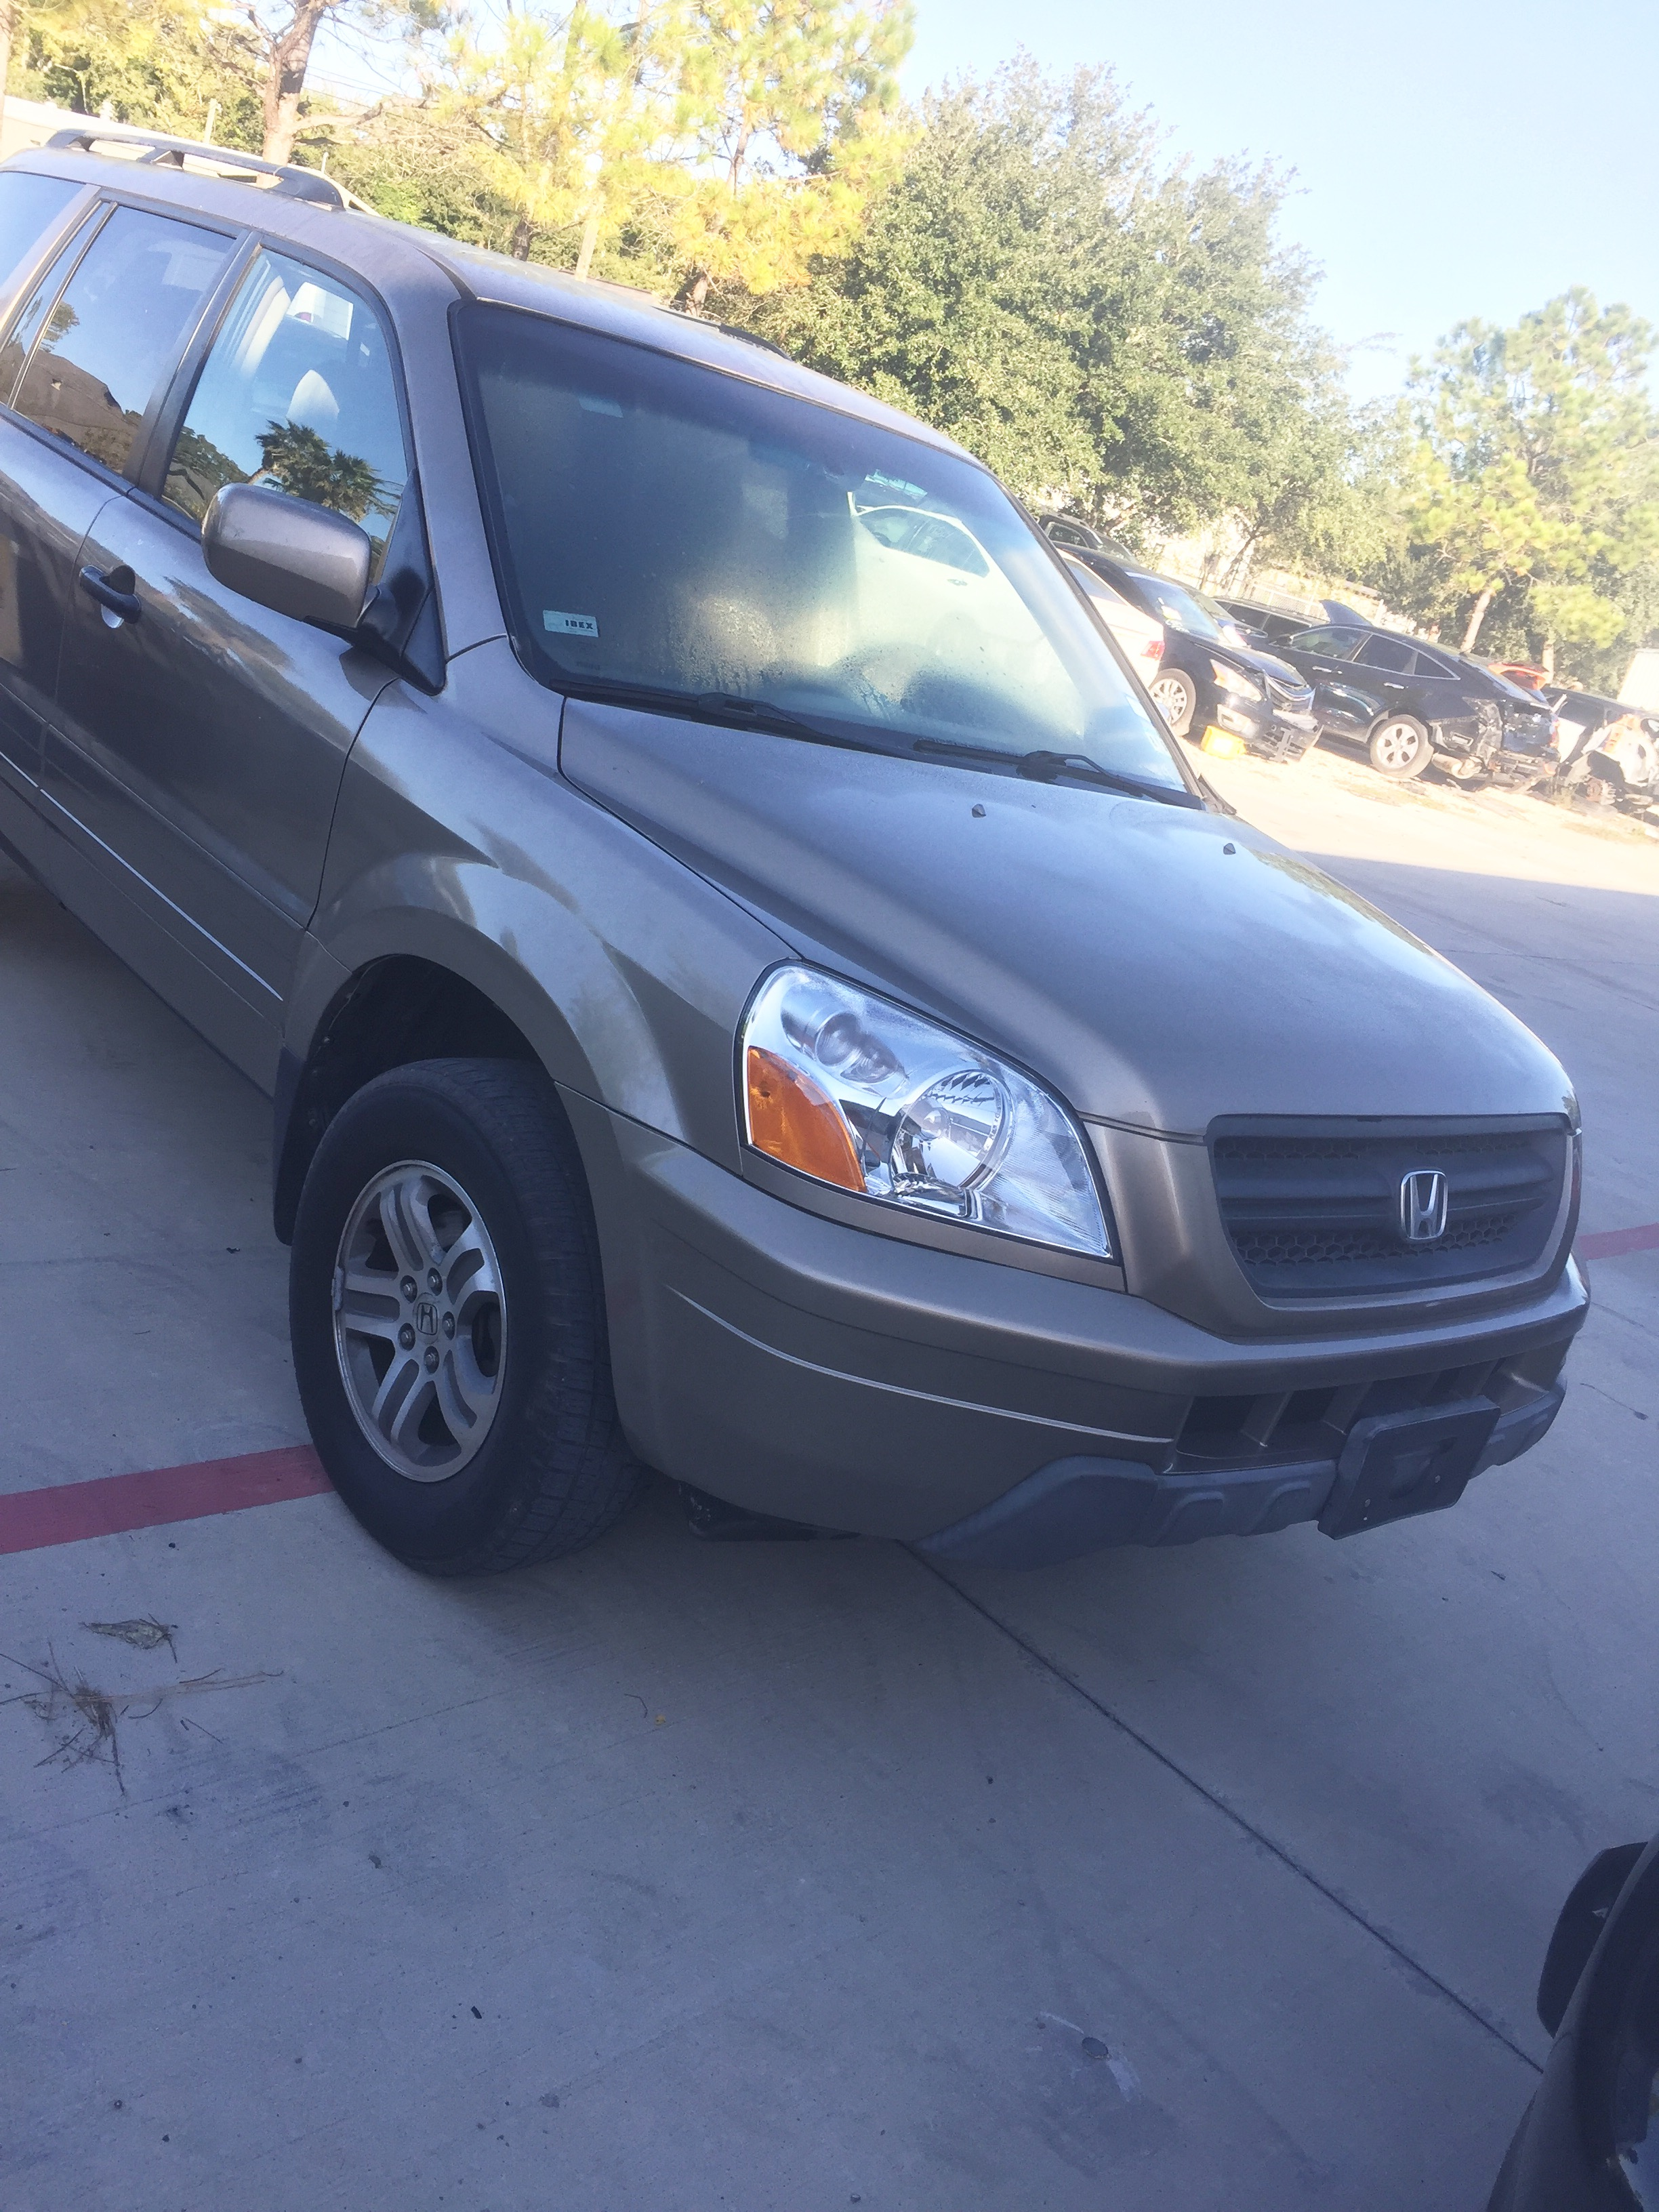 honda awestruck hyundai file pilot nov used auto